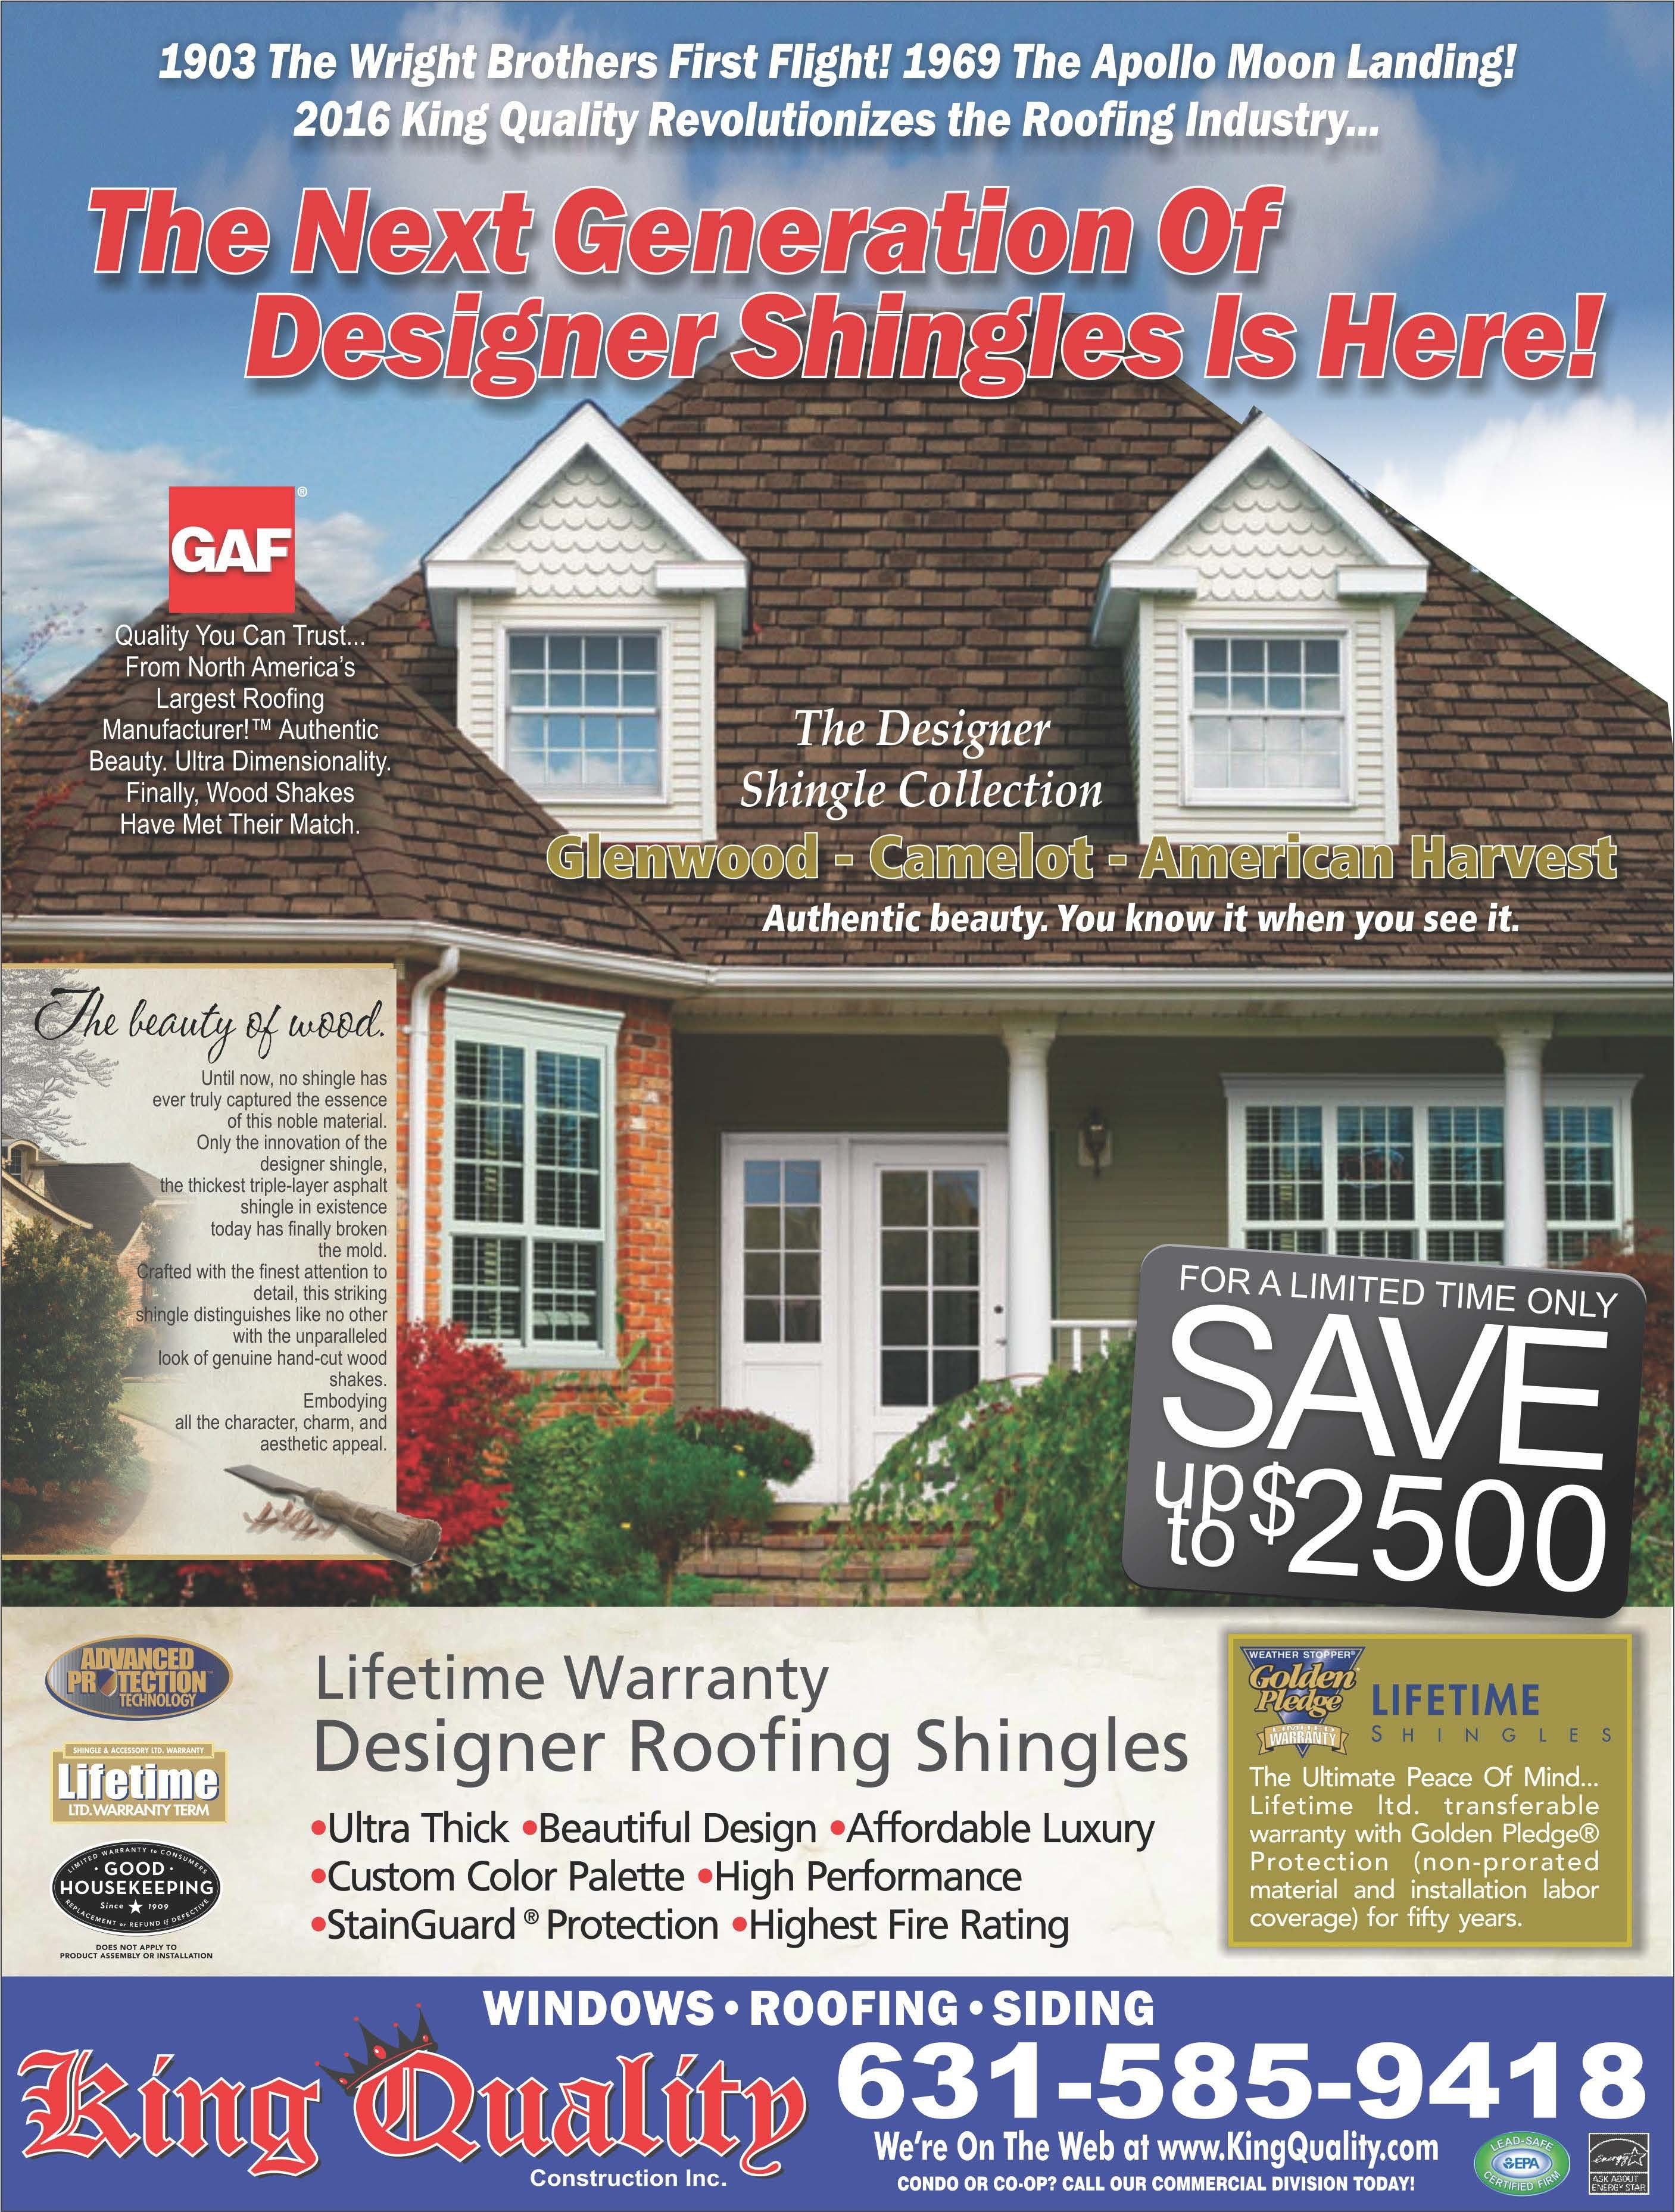 Save up to $2500 on designer shingles installed by King Quality Construction